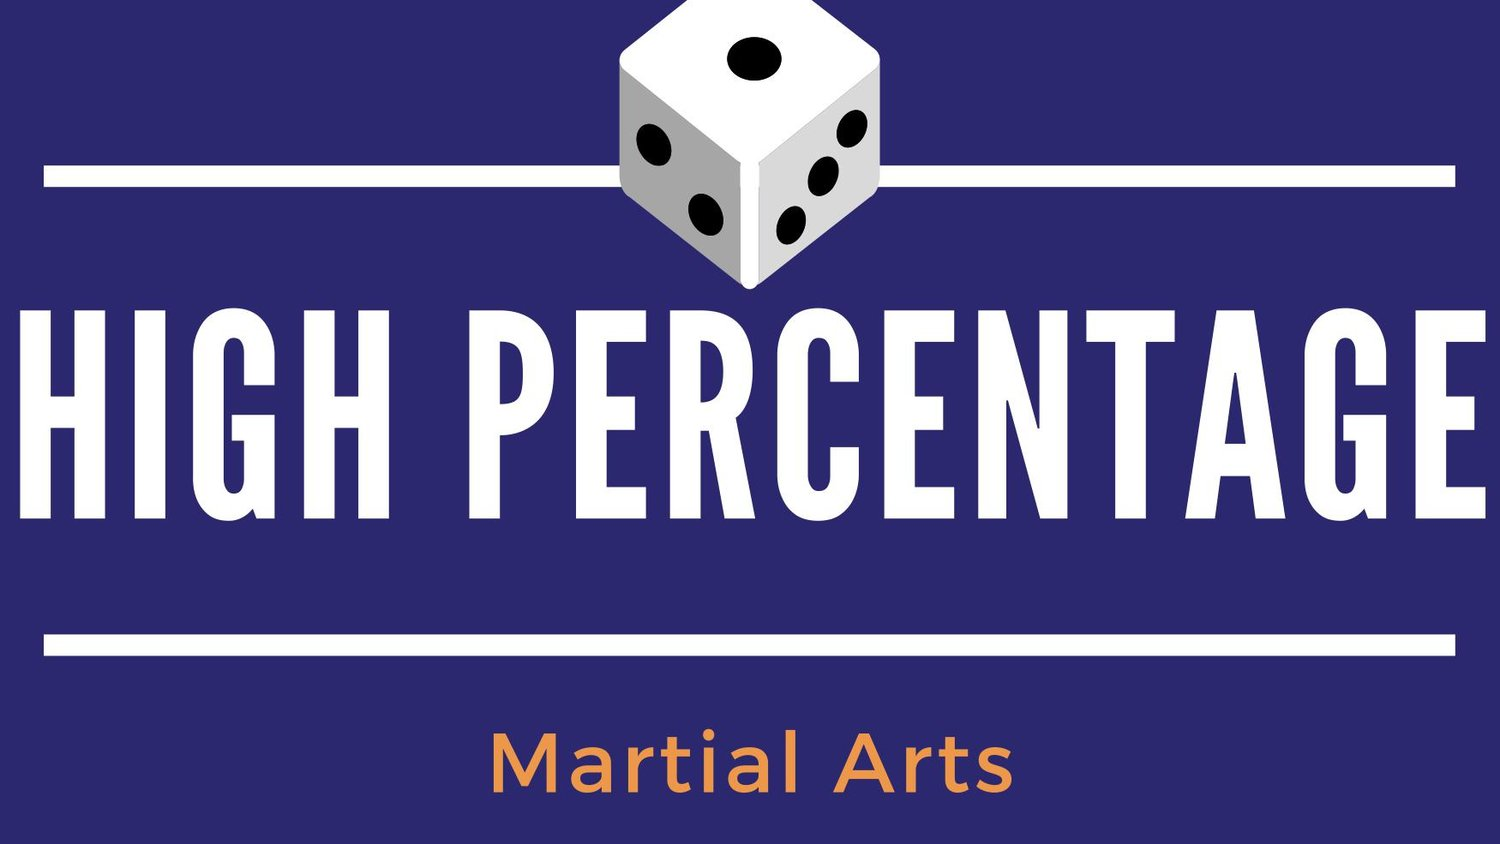 High Percentage Martial Arts